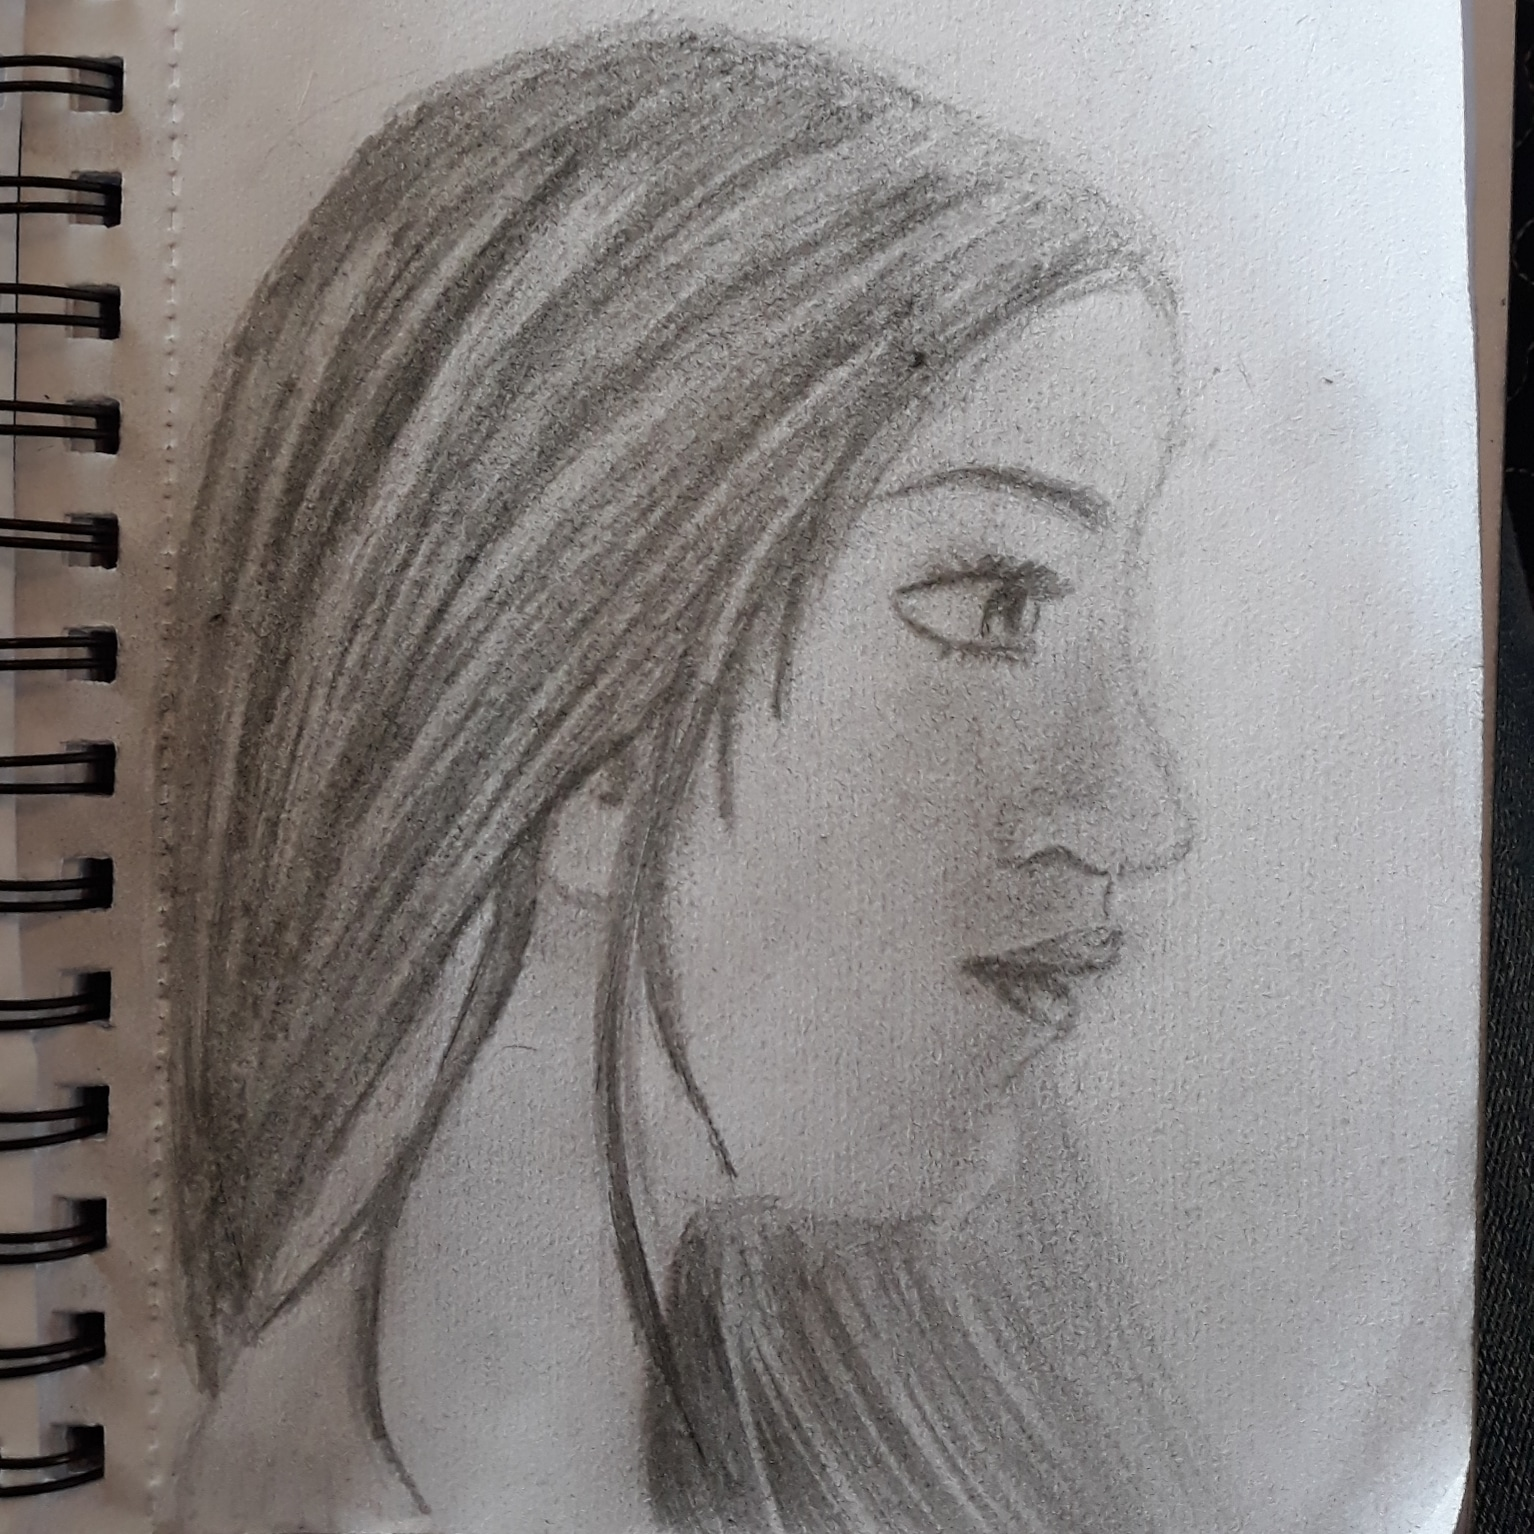 atempt 3 at trying to draw a semi realistic face by hramunro on